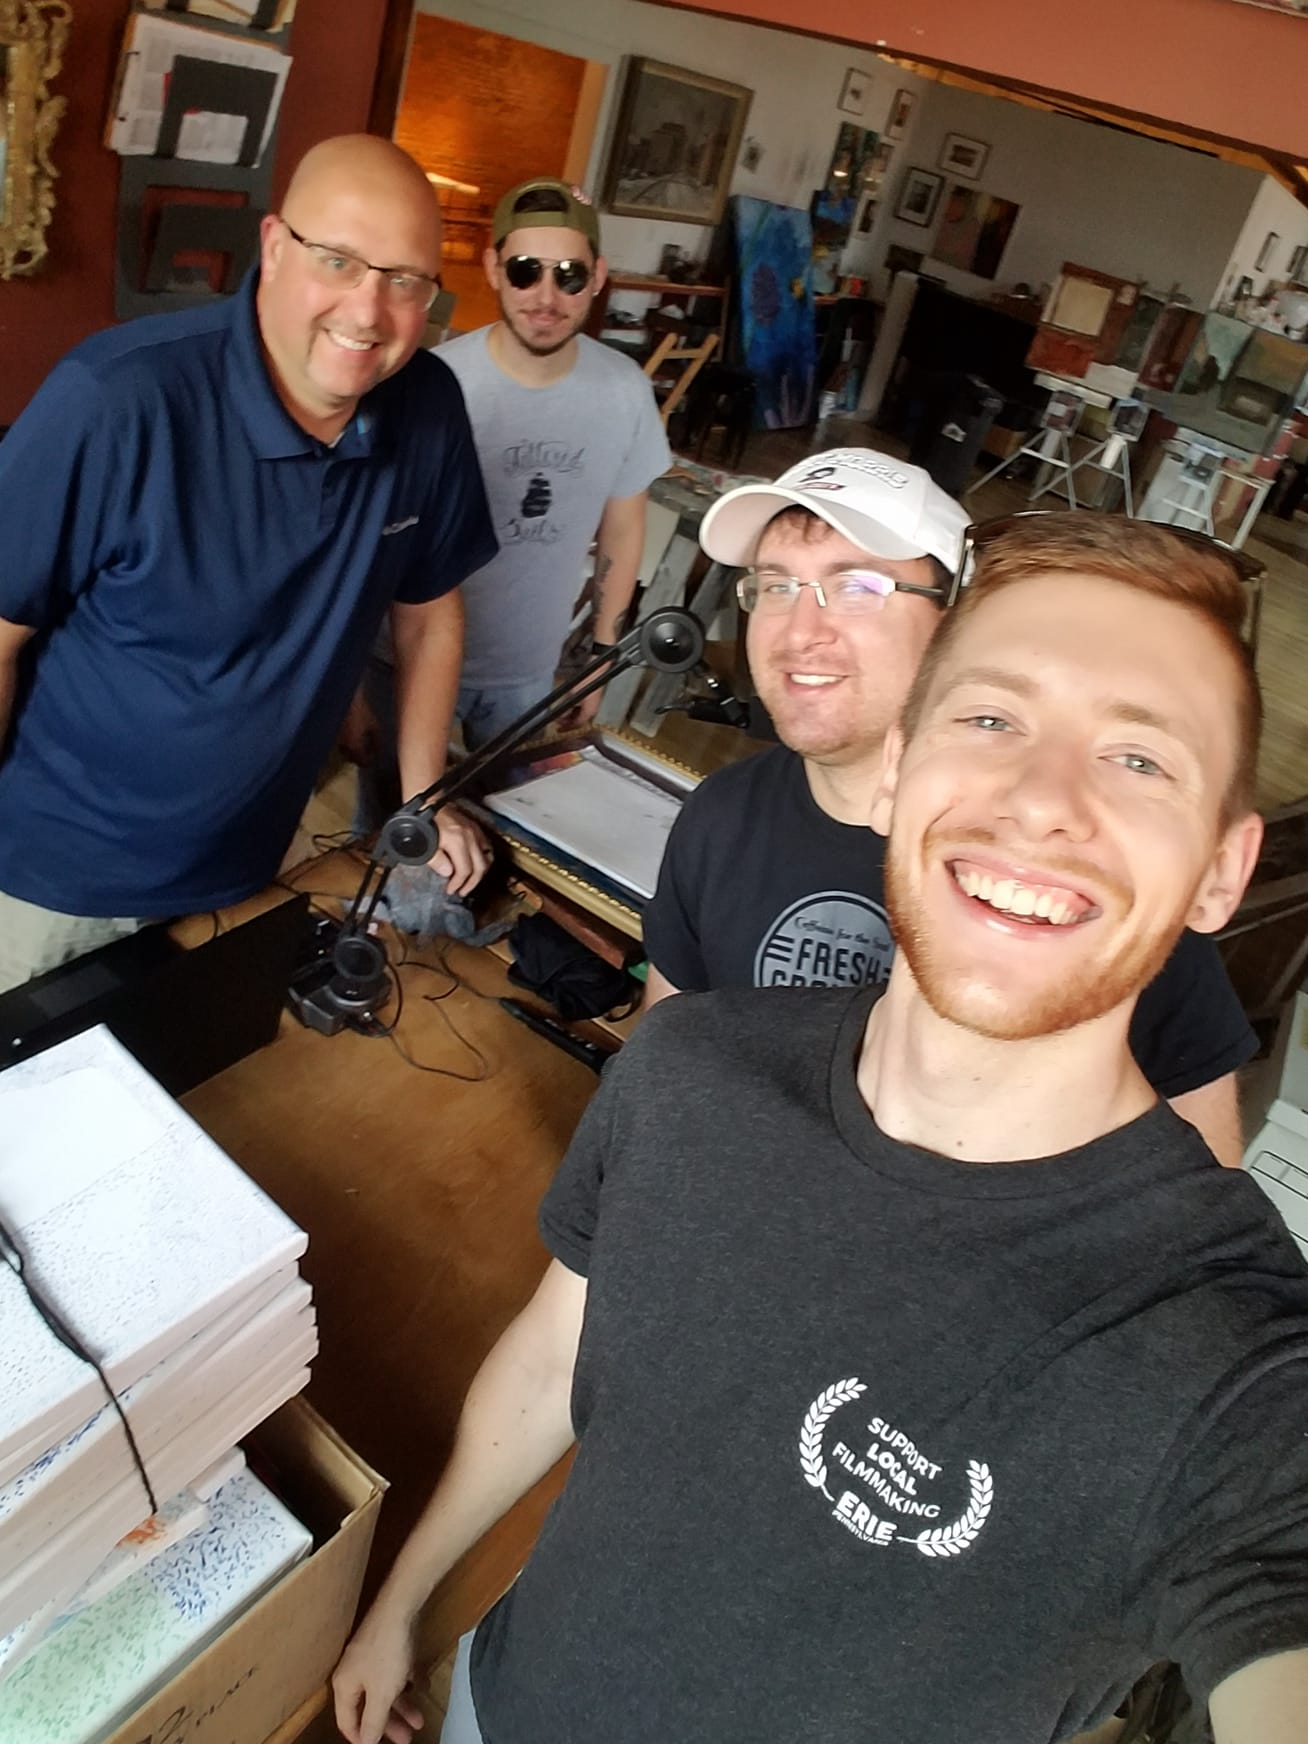 We were invited by Craig Fenton of 92.7FM or 940AM WGRP to do a radio spot! He then offered us to join him at the station's broadcast booth during Greenville's Heritage Days! We had a blast!